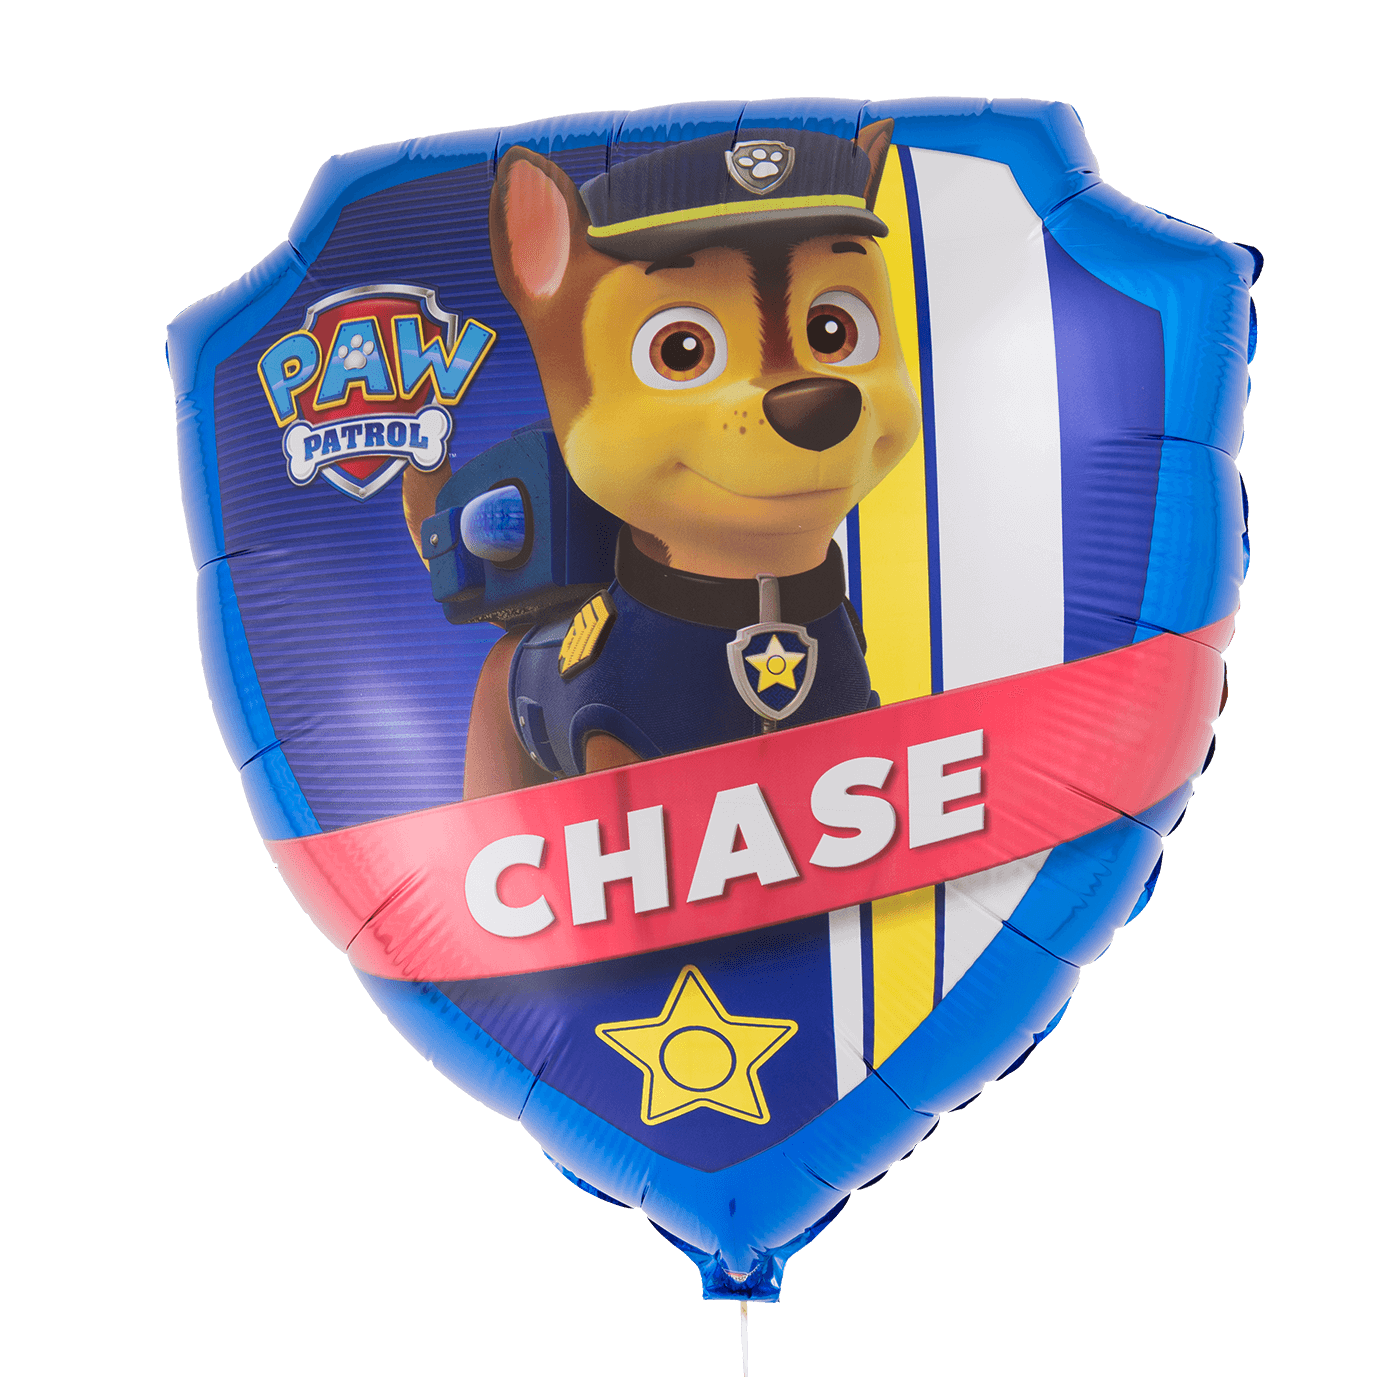 Paw patrol shield png. Supershape tether float chase